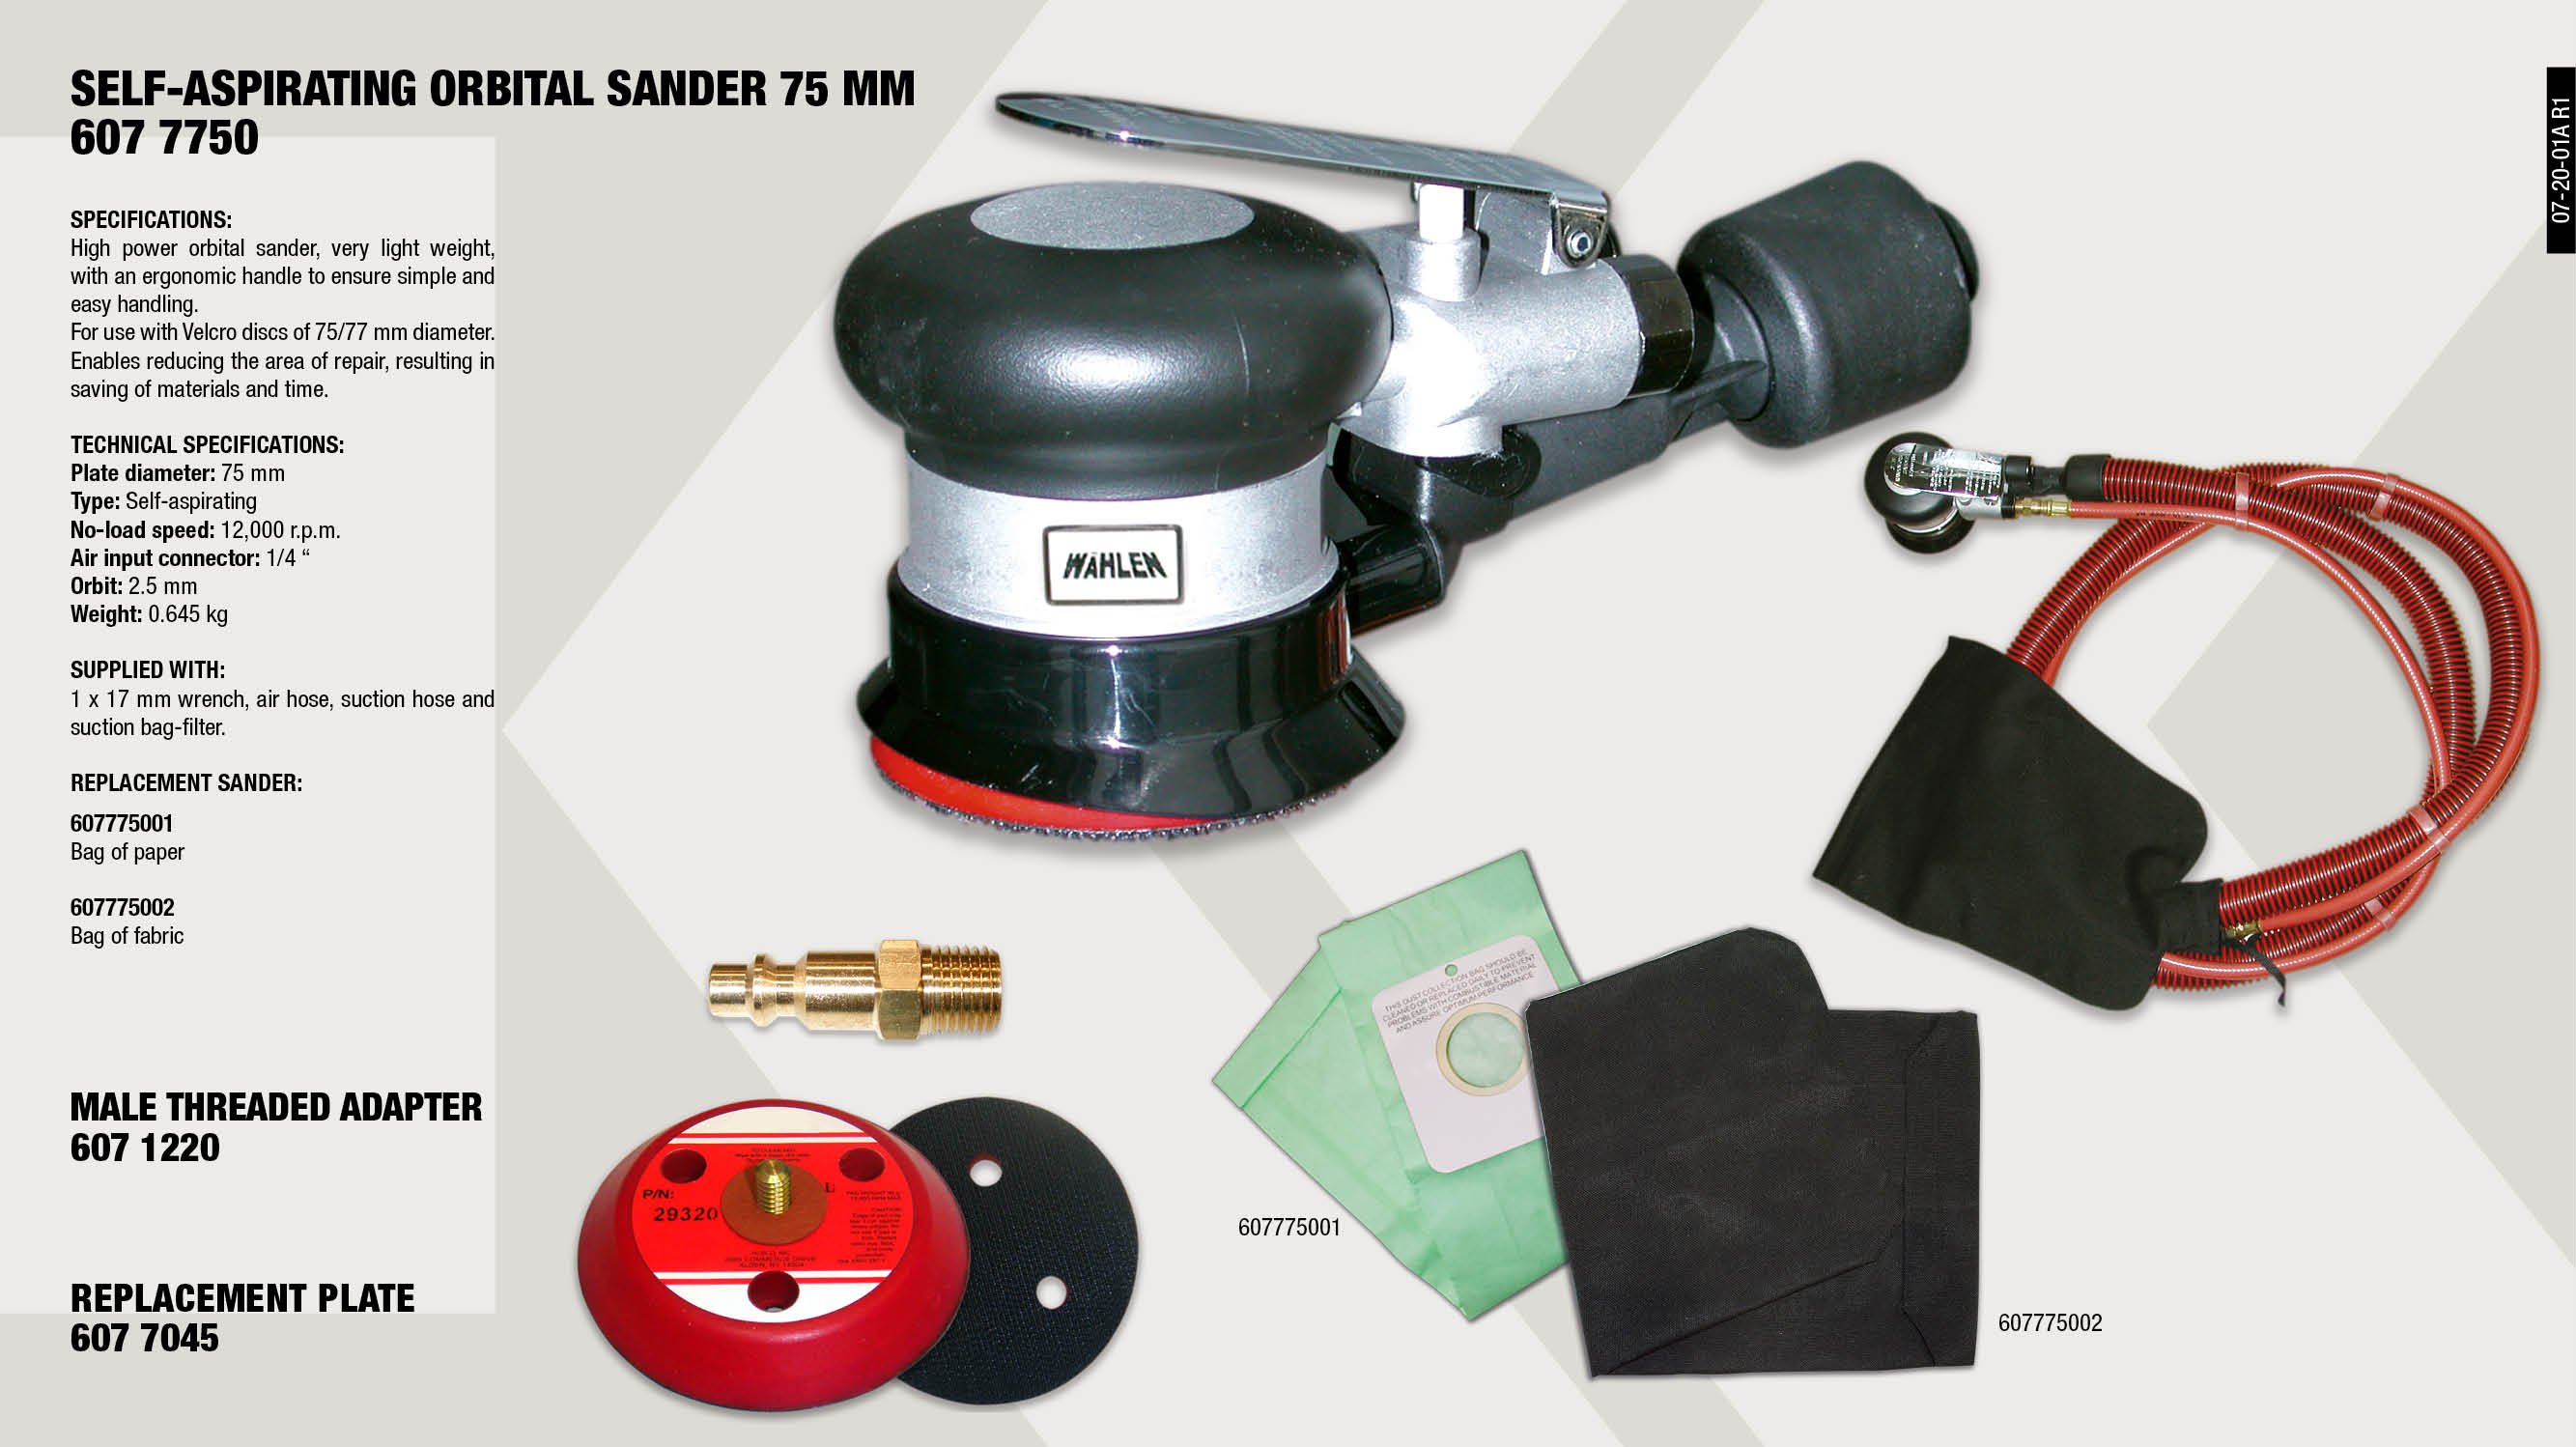 AIR ORBITAL SANDER 75 MM.                                   ,  									VACUUM BAG INSERT                                           ,  									MALE THREAD COUPLER FOR HOSES 1/4 883L/MN                   ,  									VACUUM BAG                                                  ,